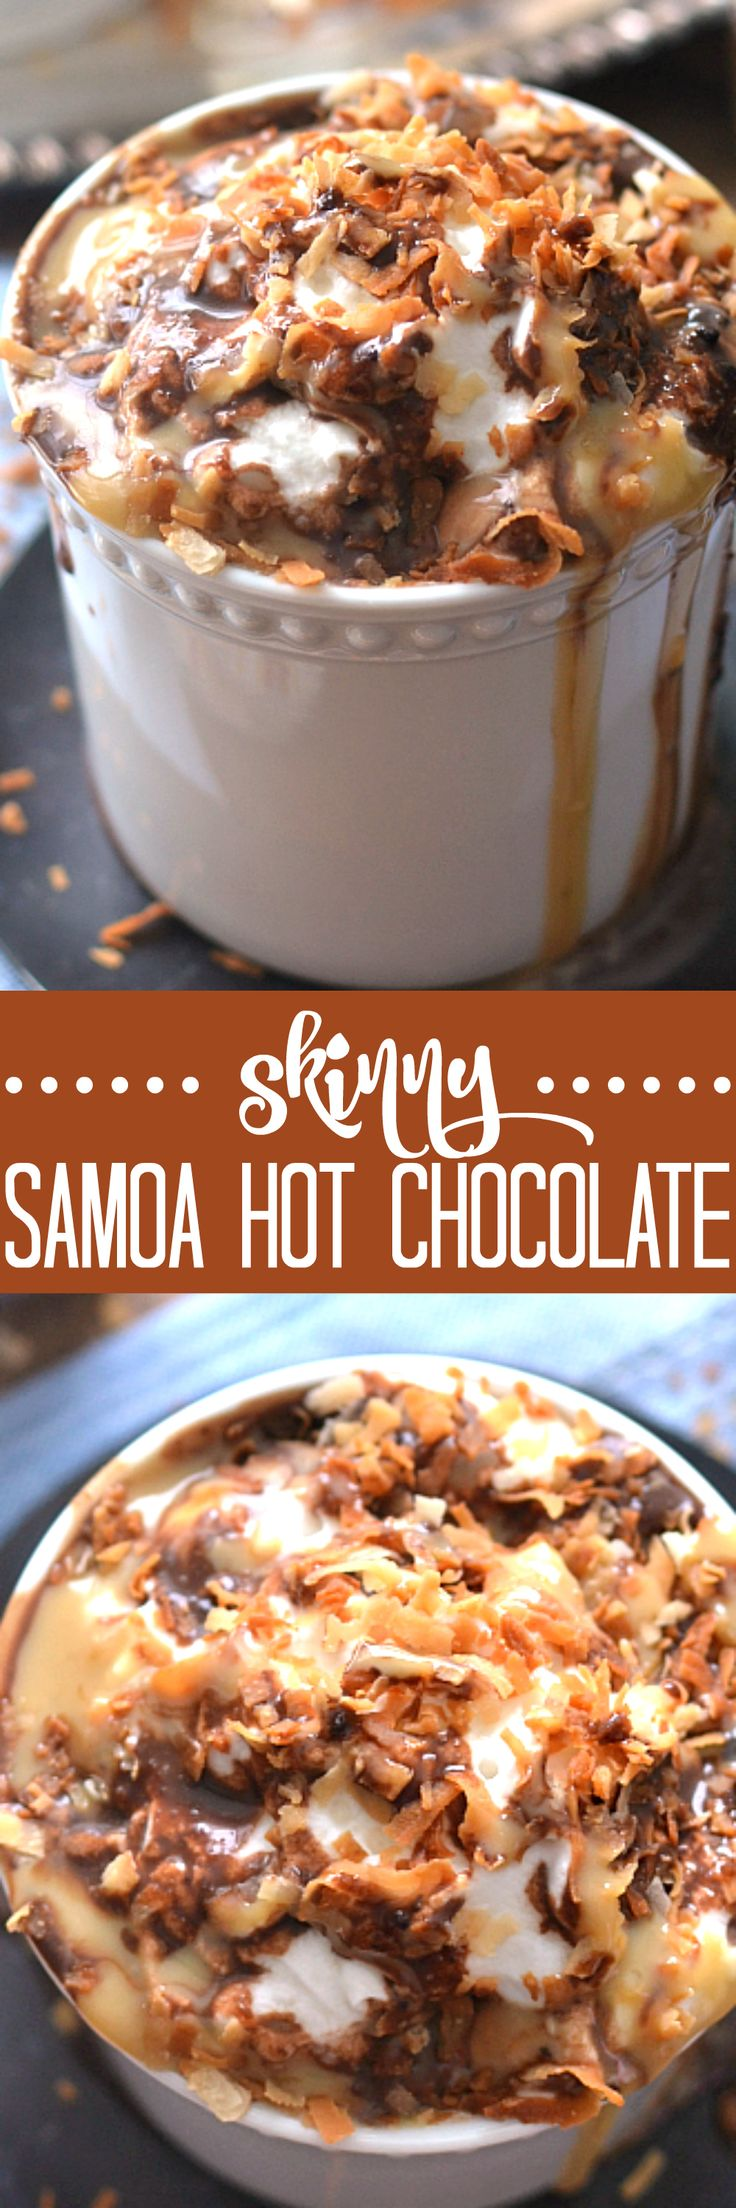 Best 20+ Coconut hot chocolate ideas on Pinterest | Healthy hot ...